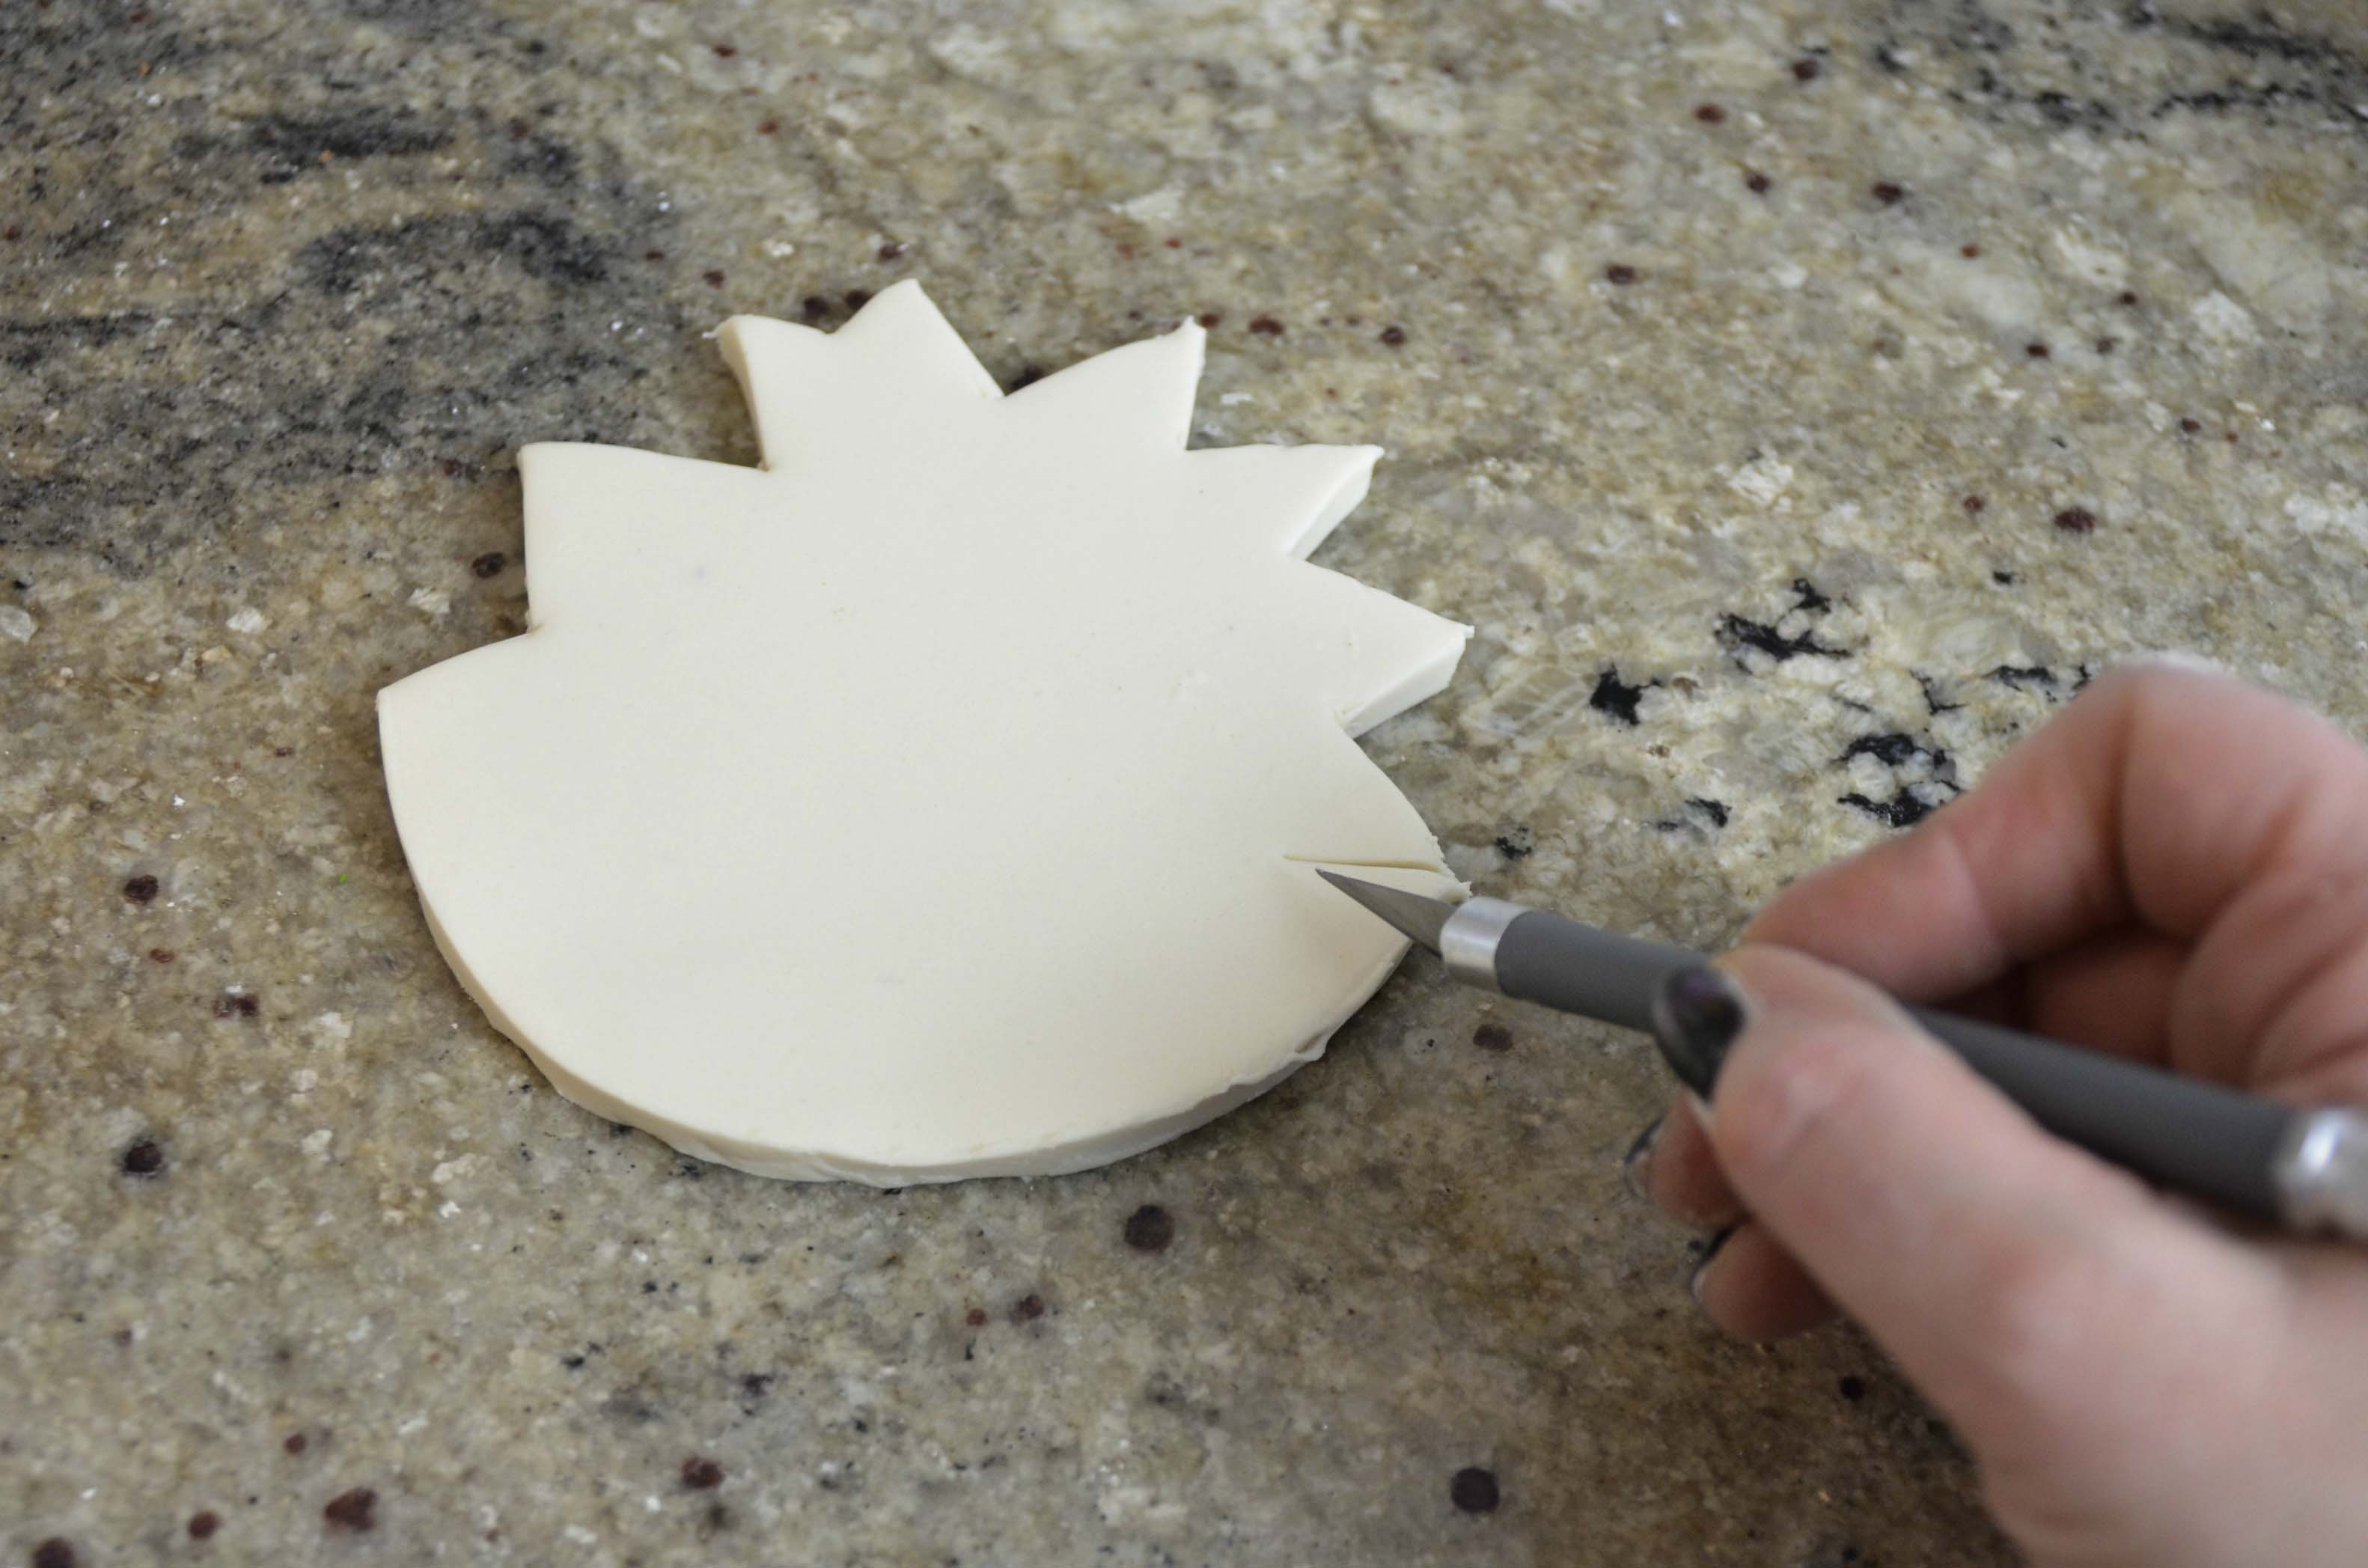 Creating a cracked shell lid using sugarpaste